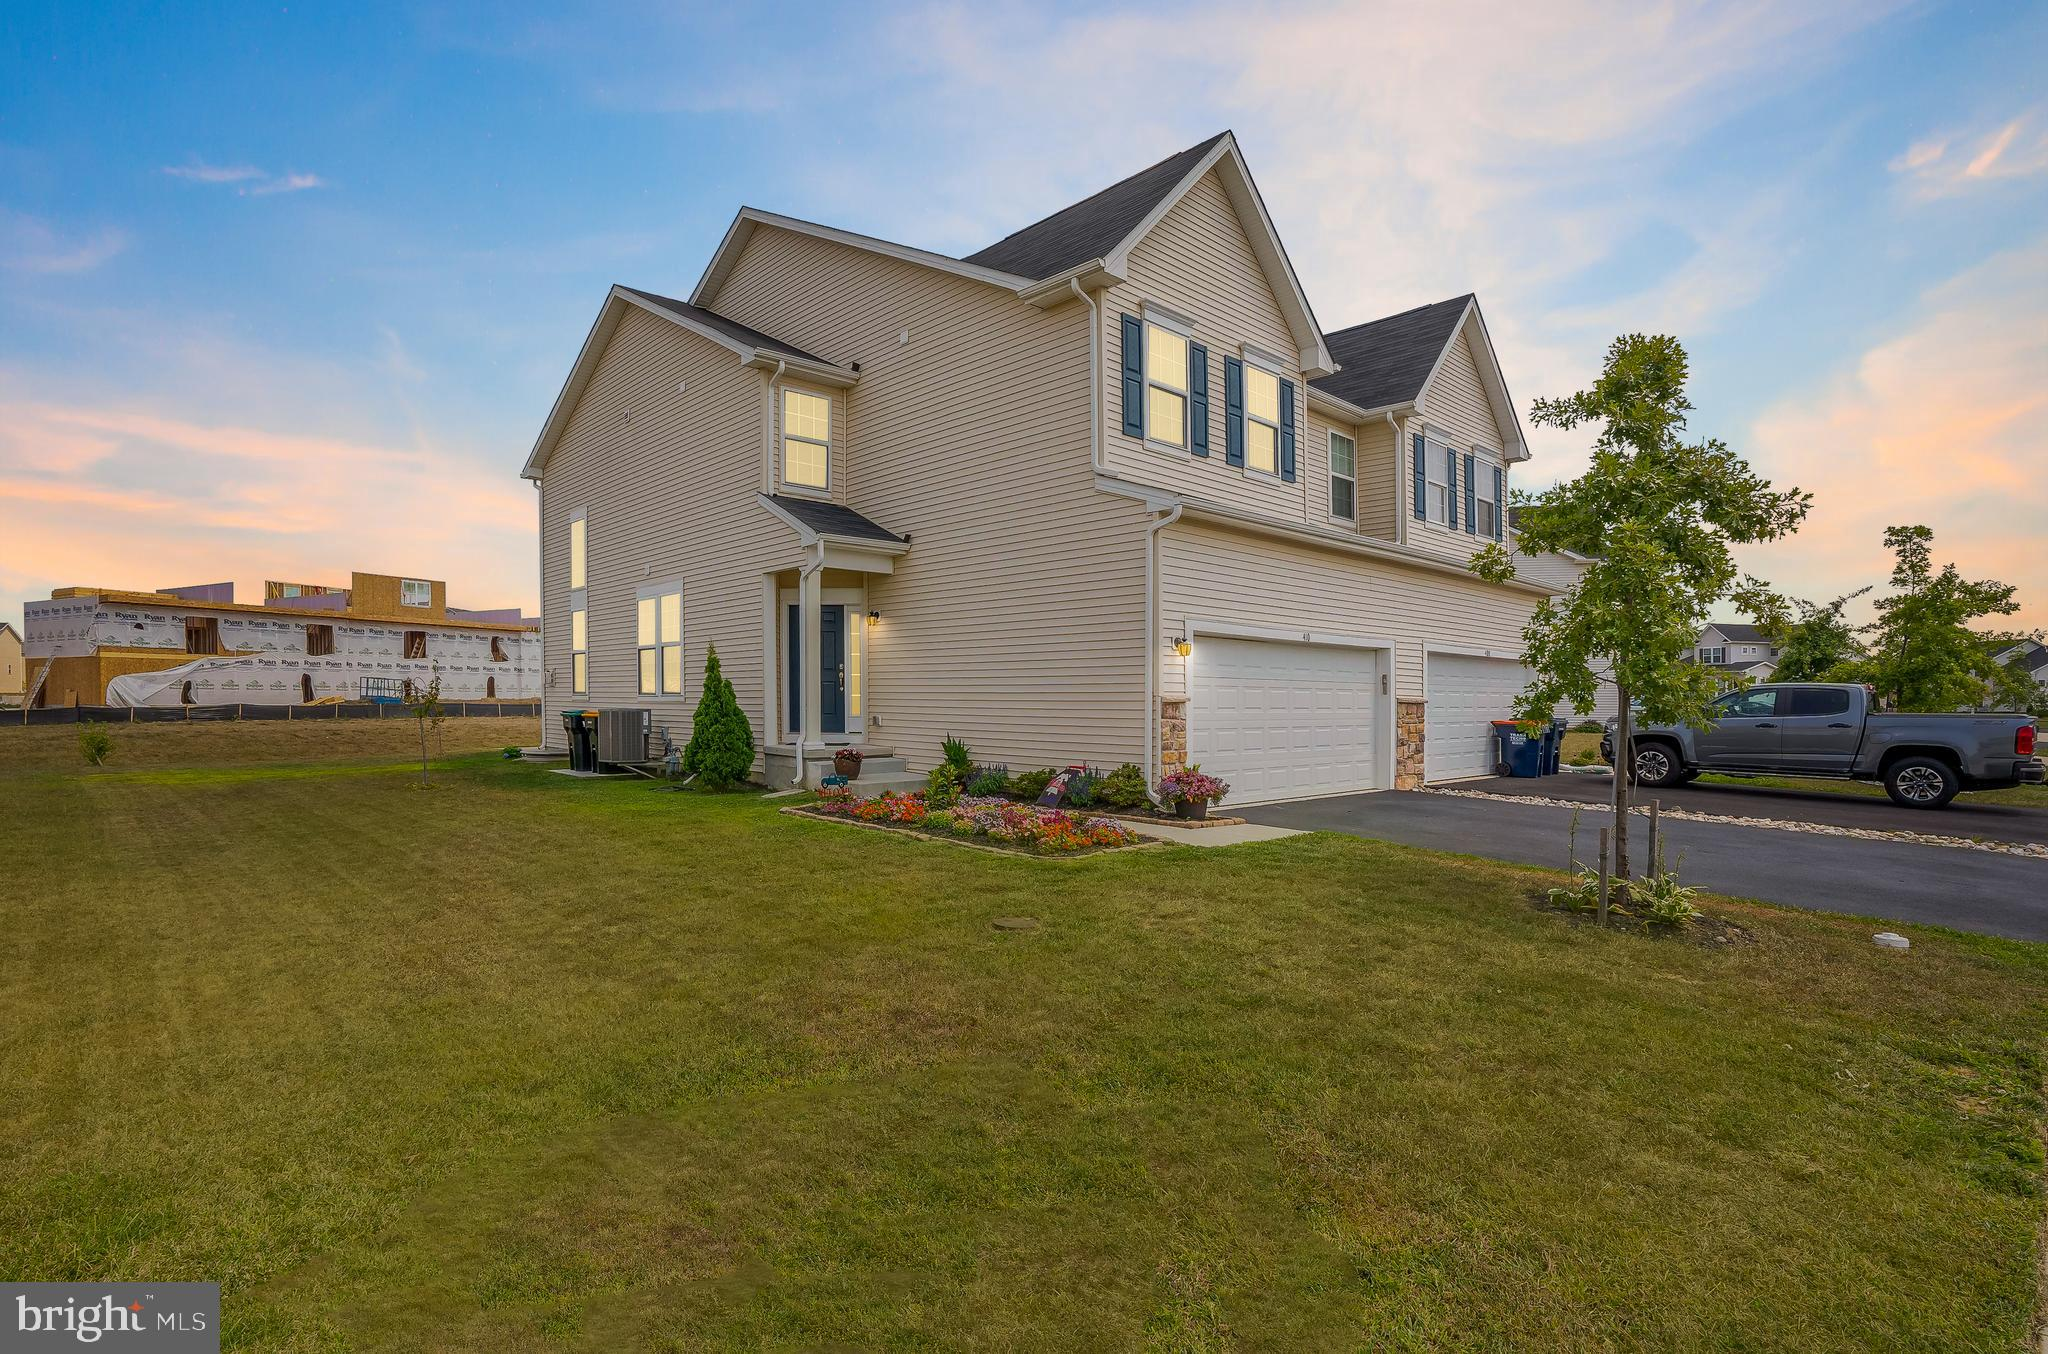 """Welcome to 410 Galway Court in the sought after community of Hyetts Crossing! This 3 bedroom, 2.5 bath twin home was built in 2017, offering you the new construction feel without the wait! As you enter, you will immediately fall in love with this home's open floor plan, showcased by a large open foyer and beautiful, dark hardwood floors throughout. The spacious gourmet kitchen boasts granite countertops, new stainless steel appliances, tile backsplash, plenty of cabinet space, and a large center island with seating! The kitchen opens up into a beautiful 2-story great room with numerous large windows, allowing for lots of natural light throughout the living area. The tall ceilings and cozy wood-burning fireplace will make this your favorite room to relax or entertain! A sliding glass door gives you access to a brand new patio—the perfect spot to read a book or enjoy your morning coffee. The second level features a balcony overlooking the downstairs living area, allowing the natural light to continue upstairs. The master bedroom has a sizable walk-in closet and an ensuite bathroom with a large tile shower with glass doors. The second floor features 2 more bedrooms (one with another walk-in closet!), another full bathroom, and a laundry area. The finished basement has plenty of room for you to create your home office, play room, or """"man cave"""", plus a large utility room for storage. All of this plus the 2-car garage and delightful curb appeal of this home make it one that you don't want to miss!"""